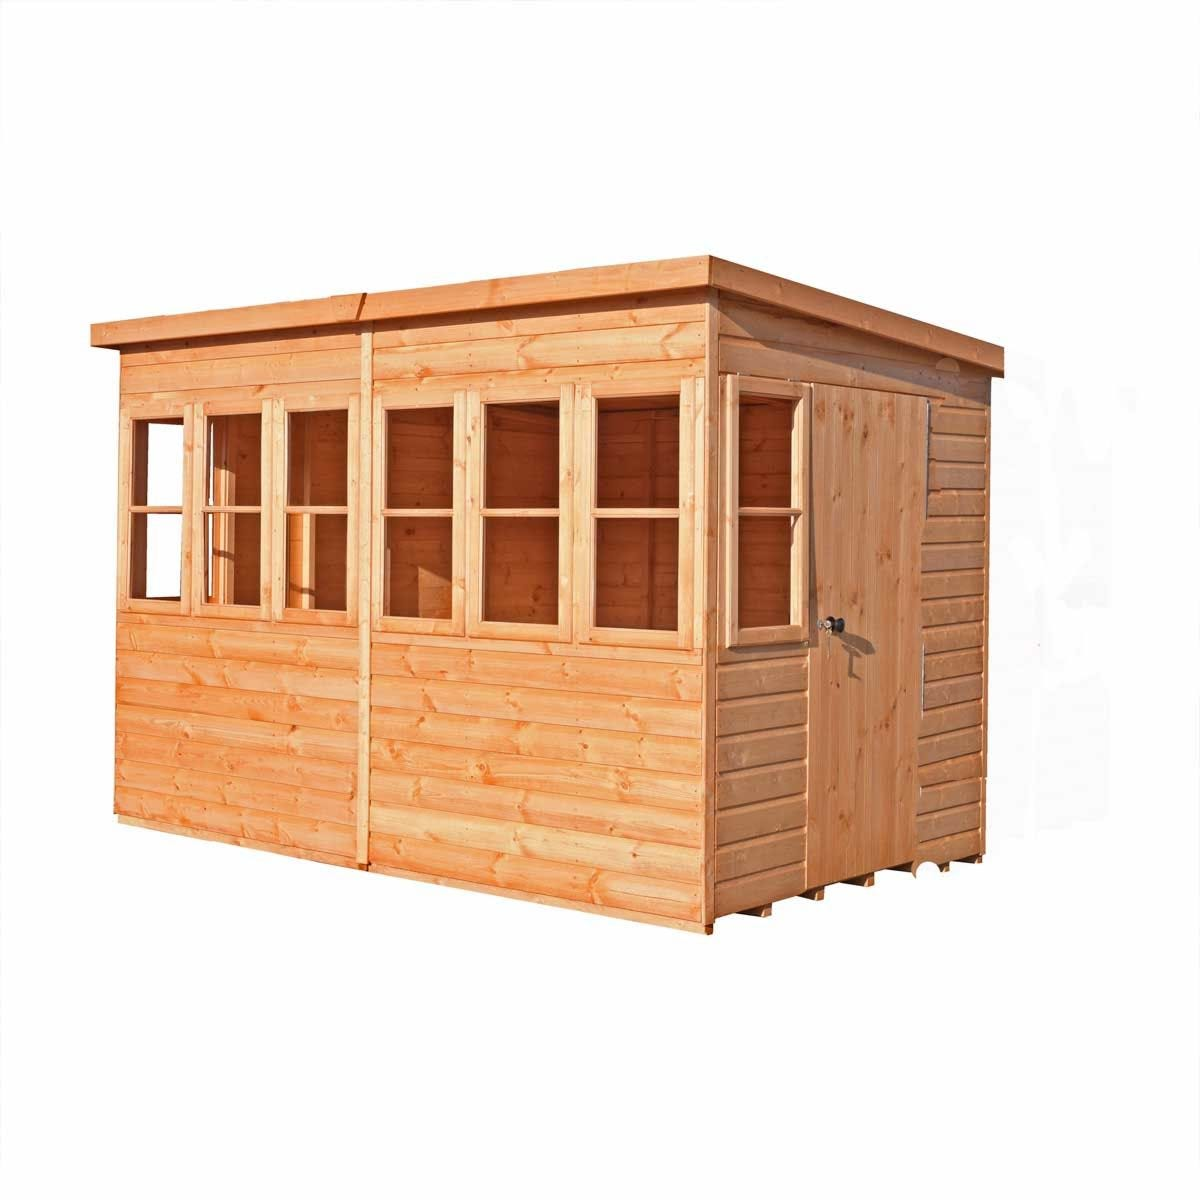 Shire Sun Pent 10' x 6' Shed